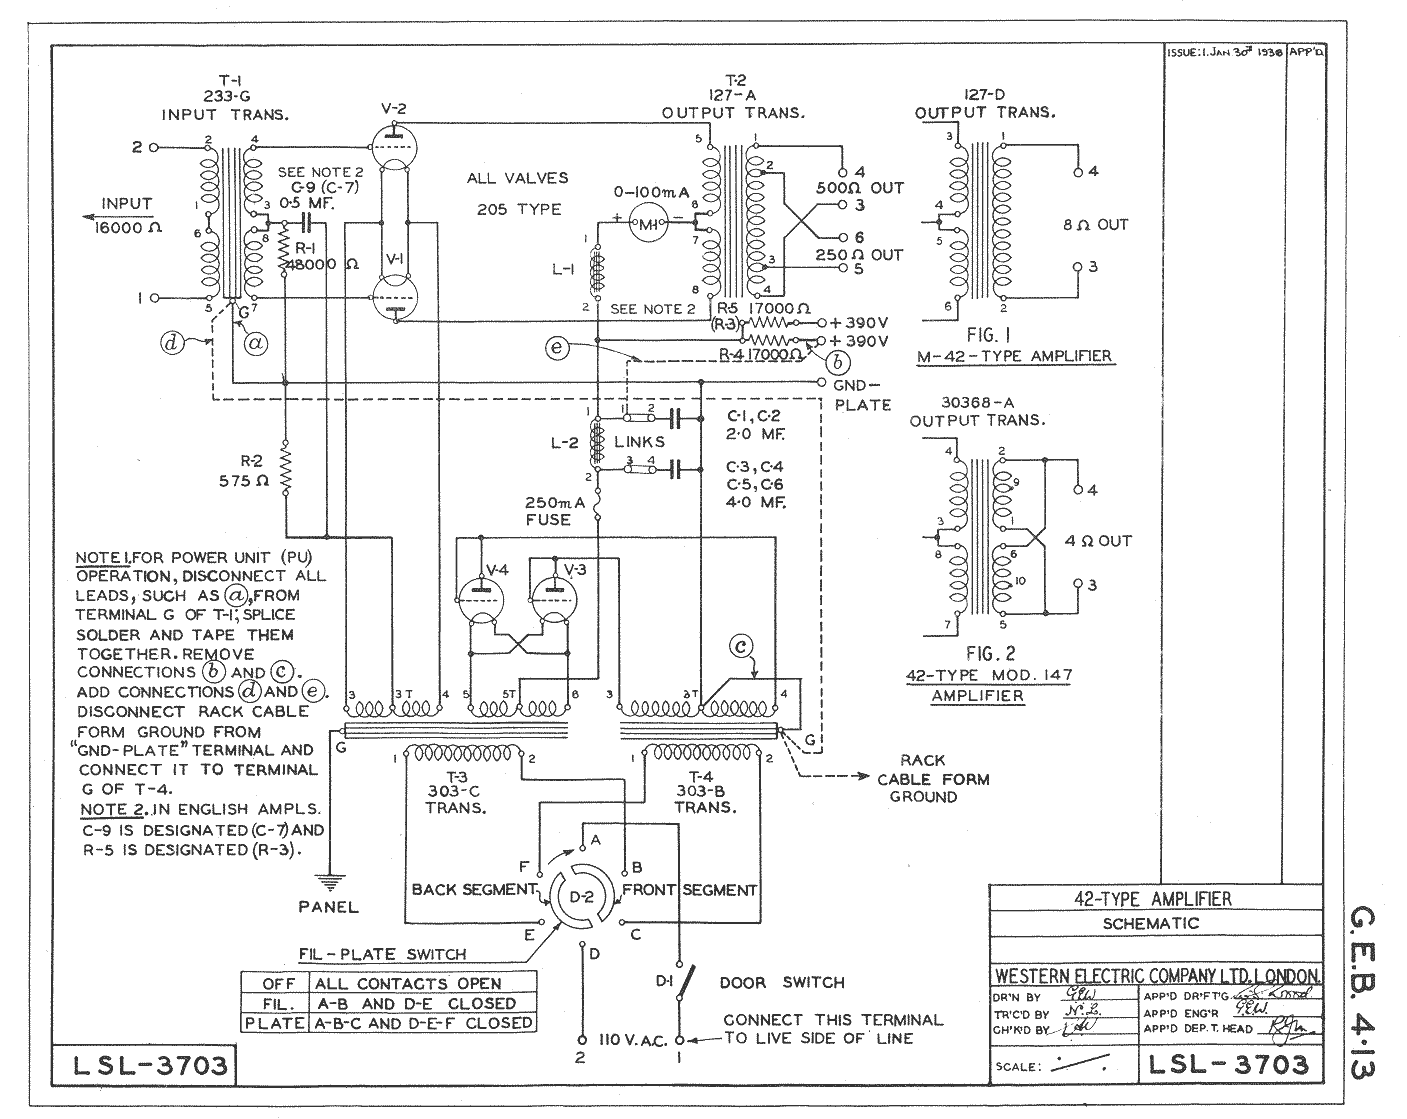 100 Amplifiers Part 1 1916 45 Lilienthal Engineering Isolation Transformer Circuit As Well Tube Lifier Together Western Electric 42 Amplifier Original Schematic